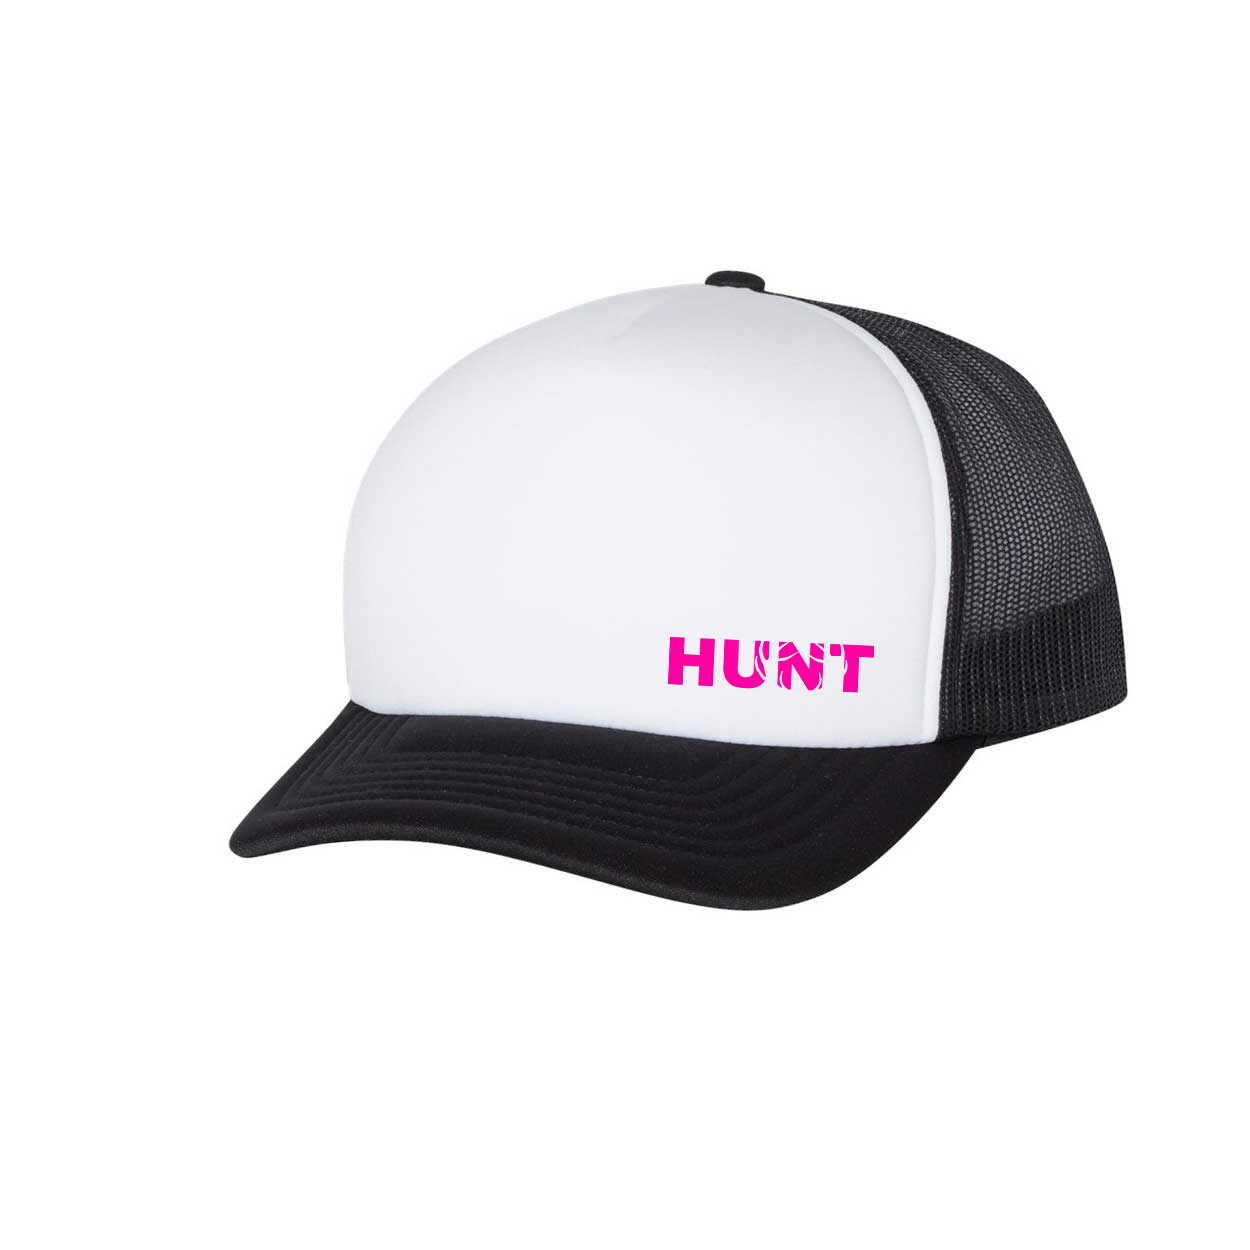 Hunt Rack Logo Night Out Premium Foam Trucker Snapback Hat Black/White (Pink Logo)